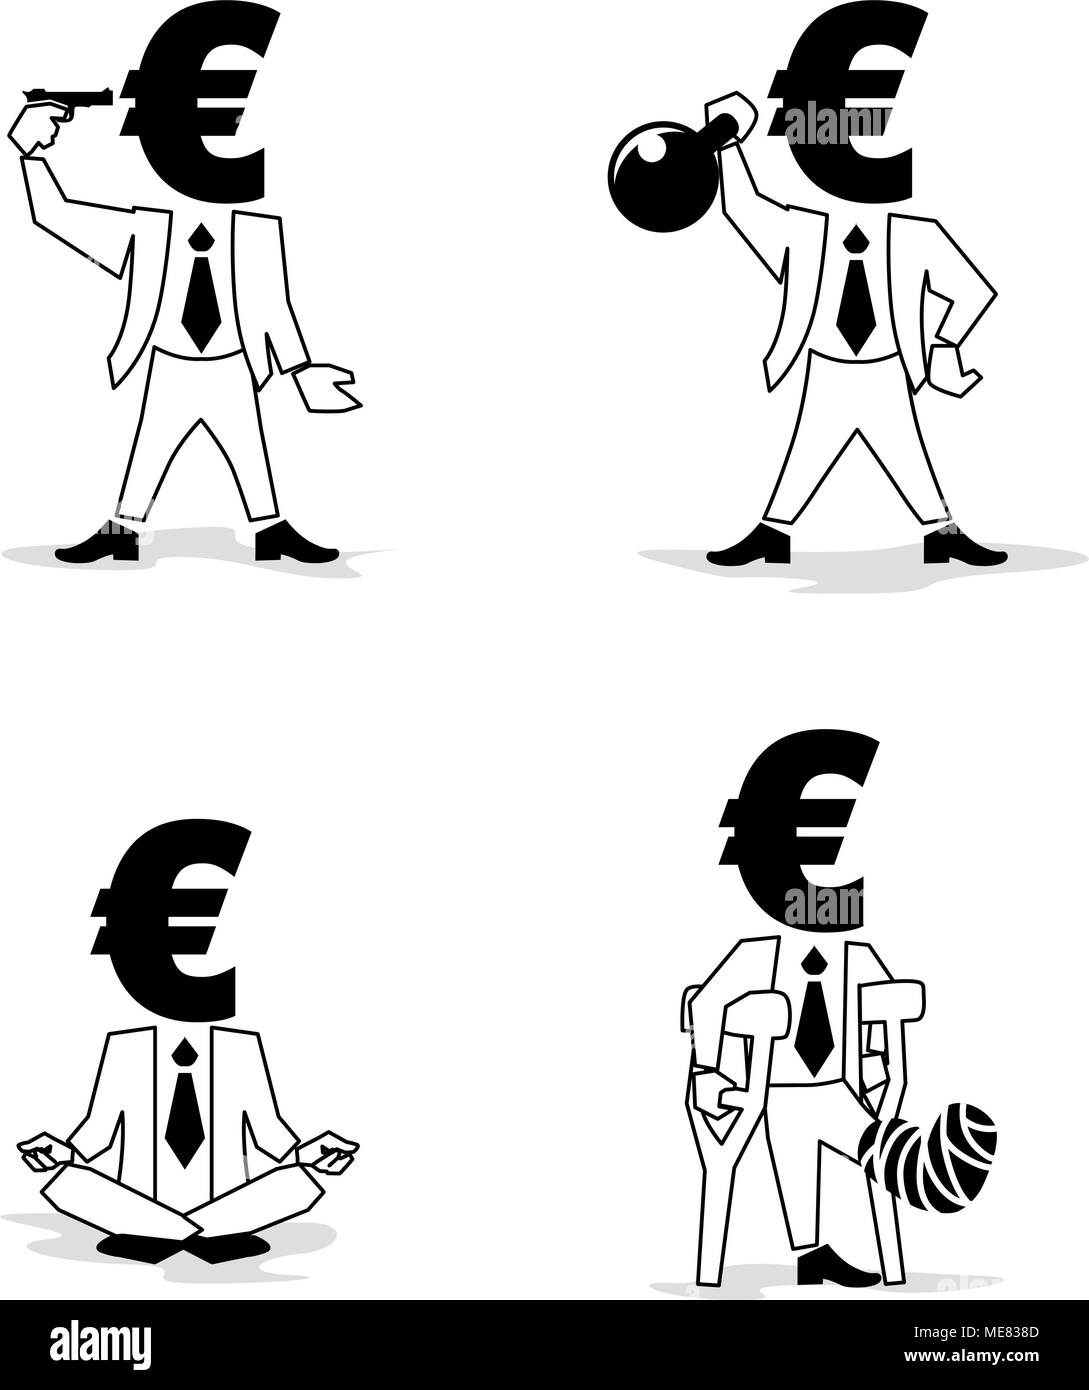 Euro sign, money symbol such as passion Businessman. Euro Coin-Man in different situation. - Stock Image